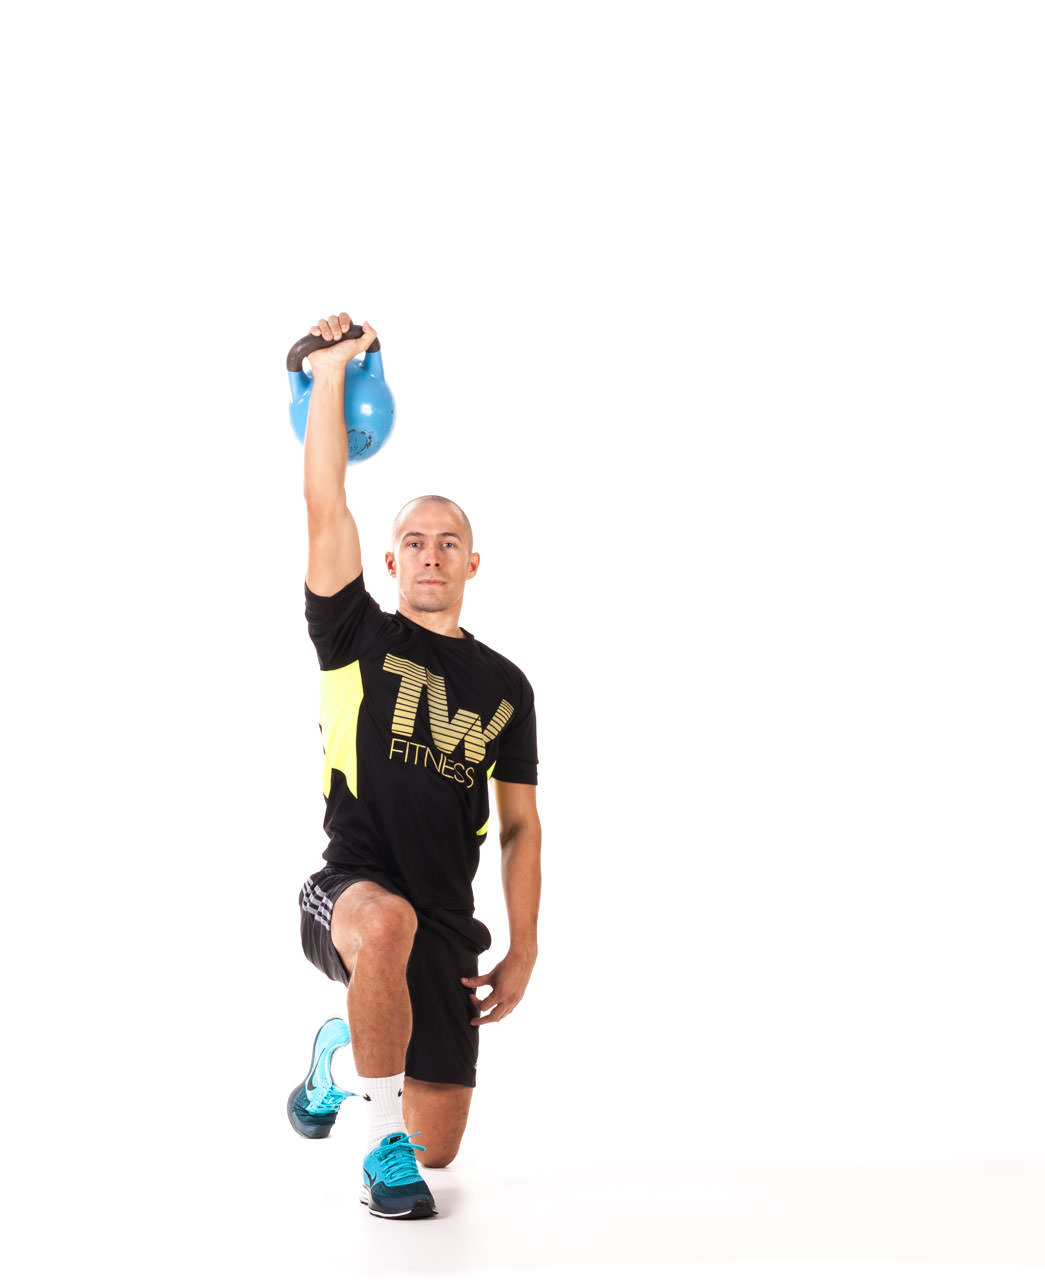 Kettlebell Turkish Get Up frame #5